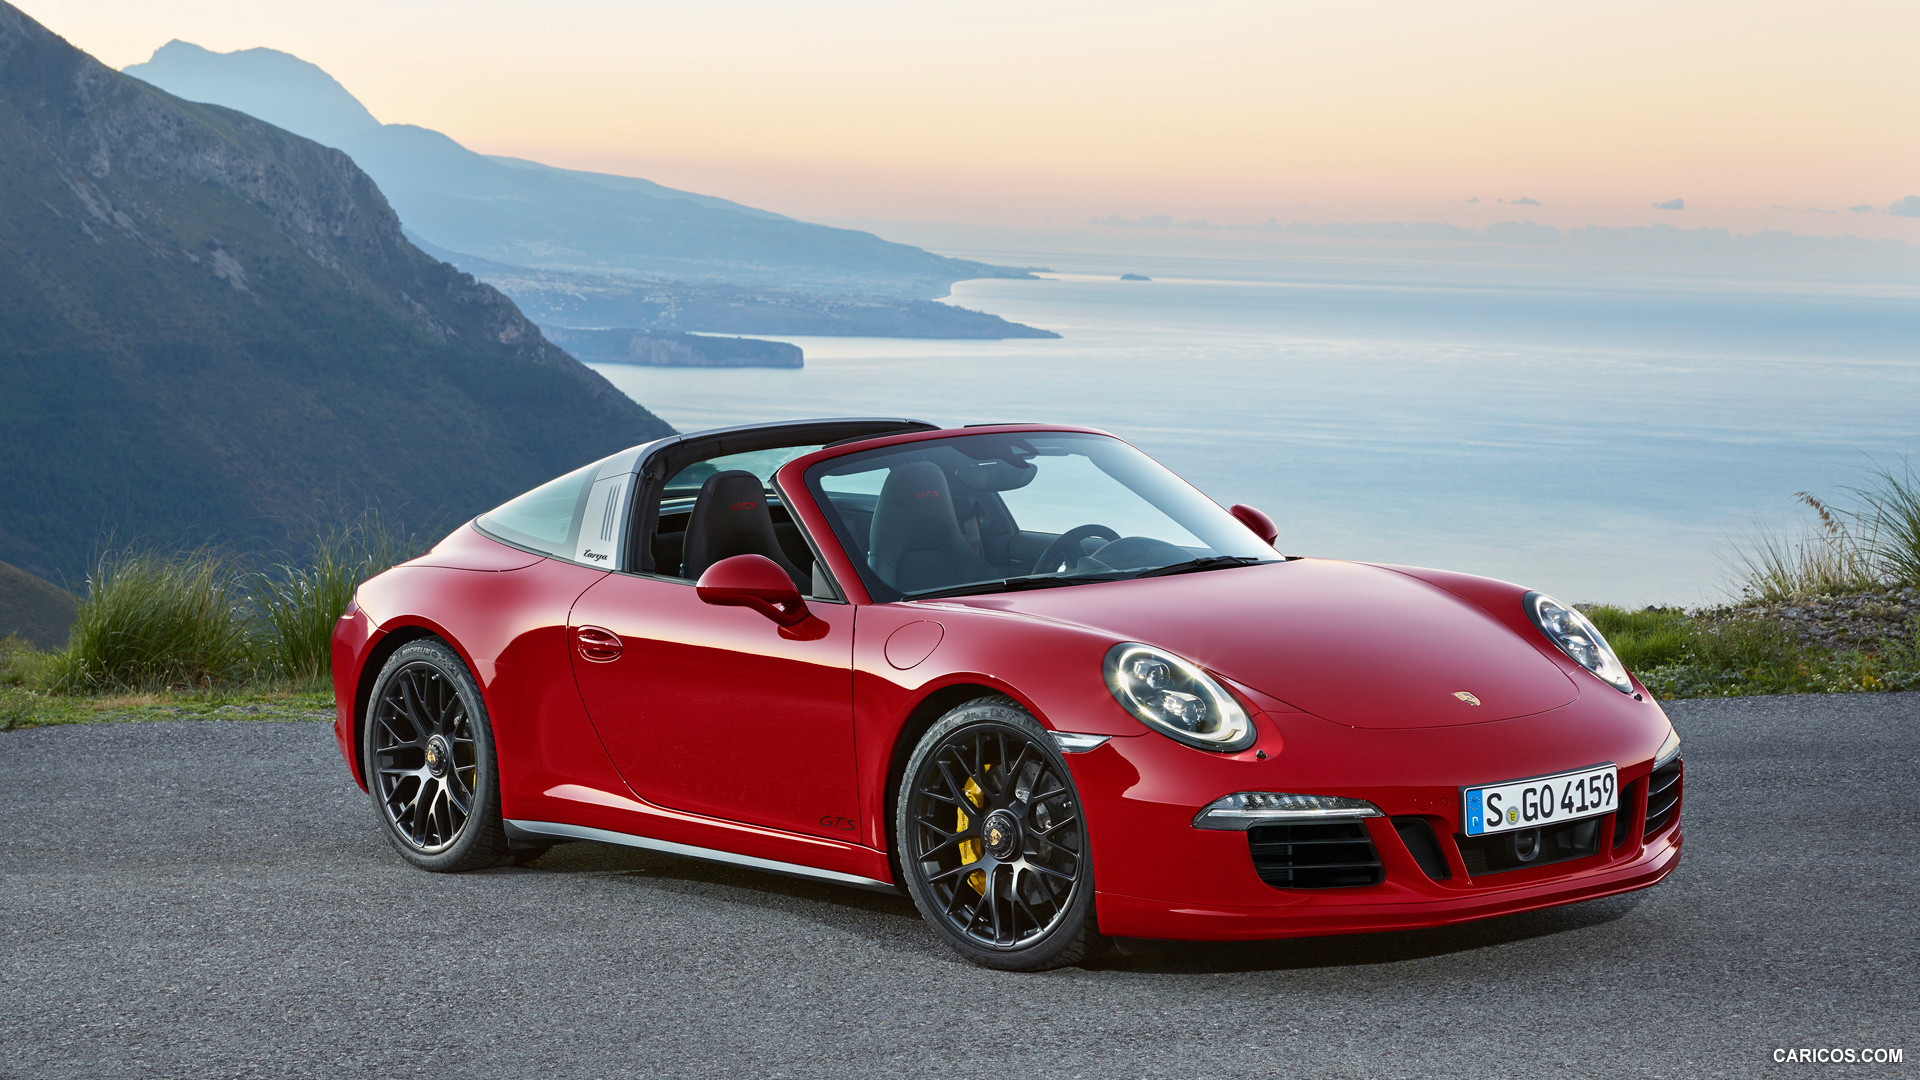 Porsche Targa 4 GTS photo 135882